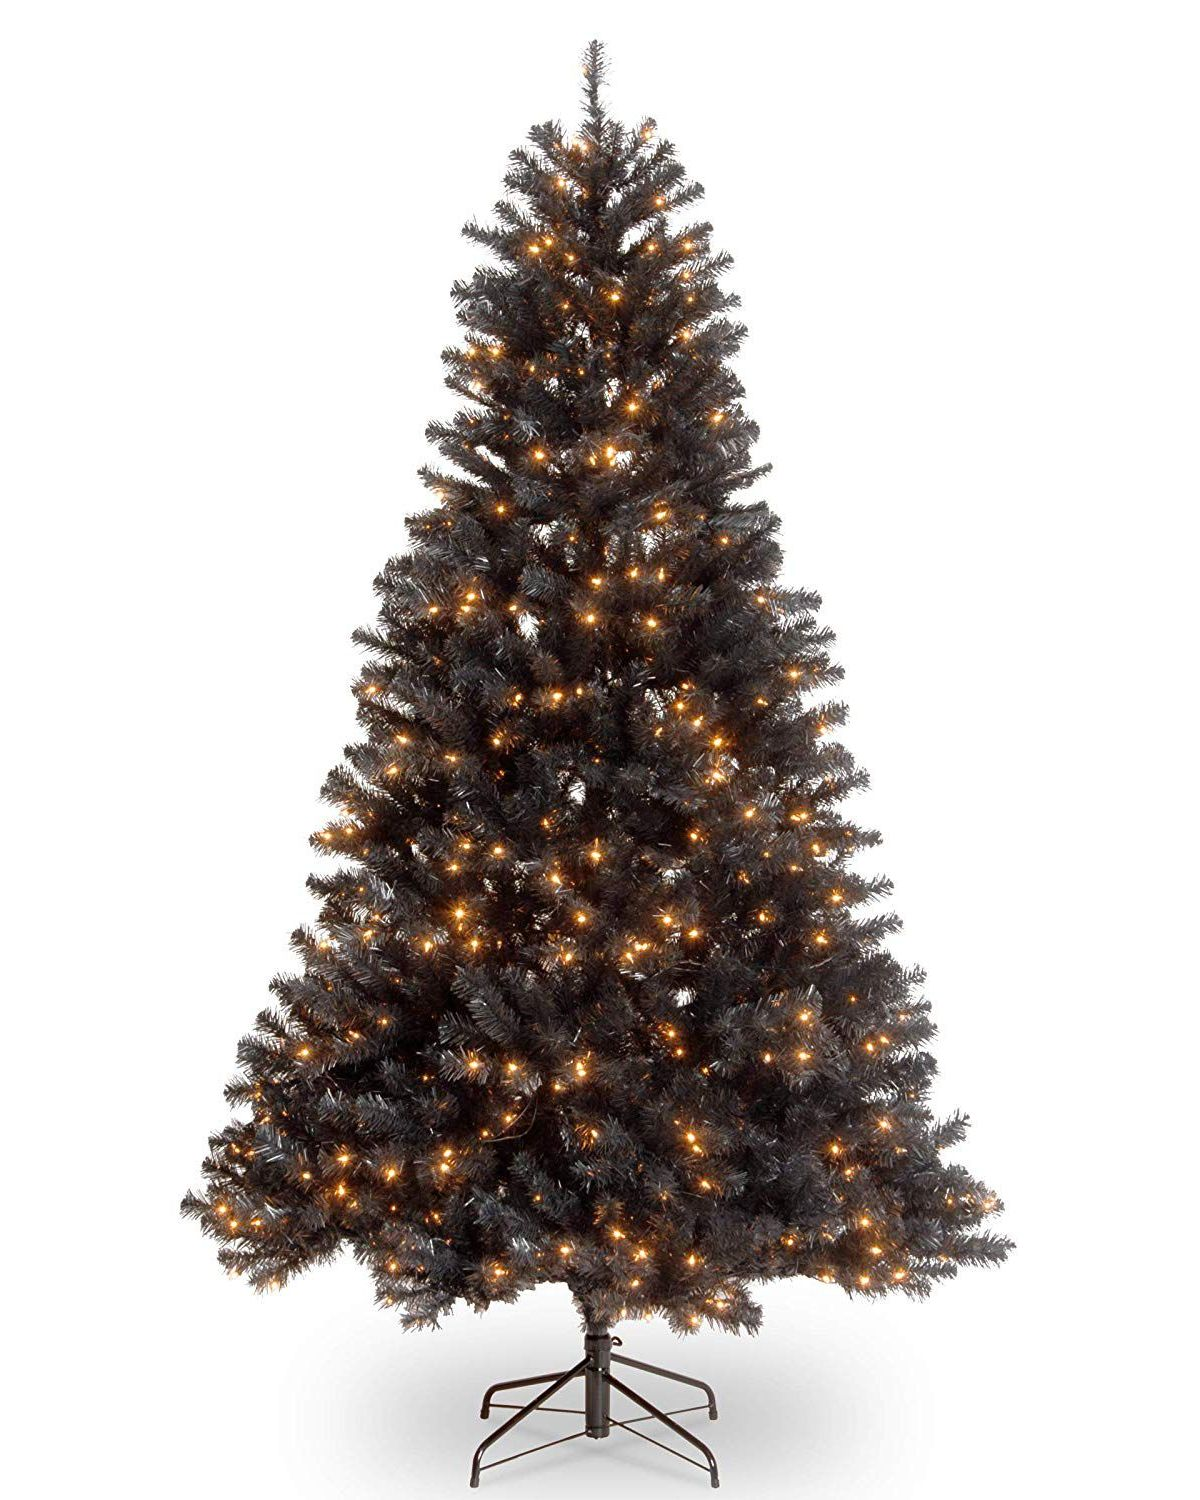 Black Christmas Trees Are The Latest Holiday Decor Trend